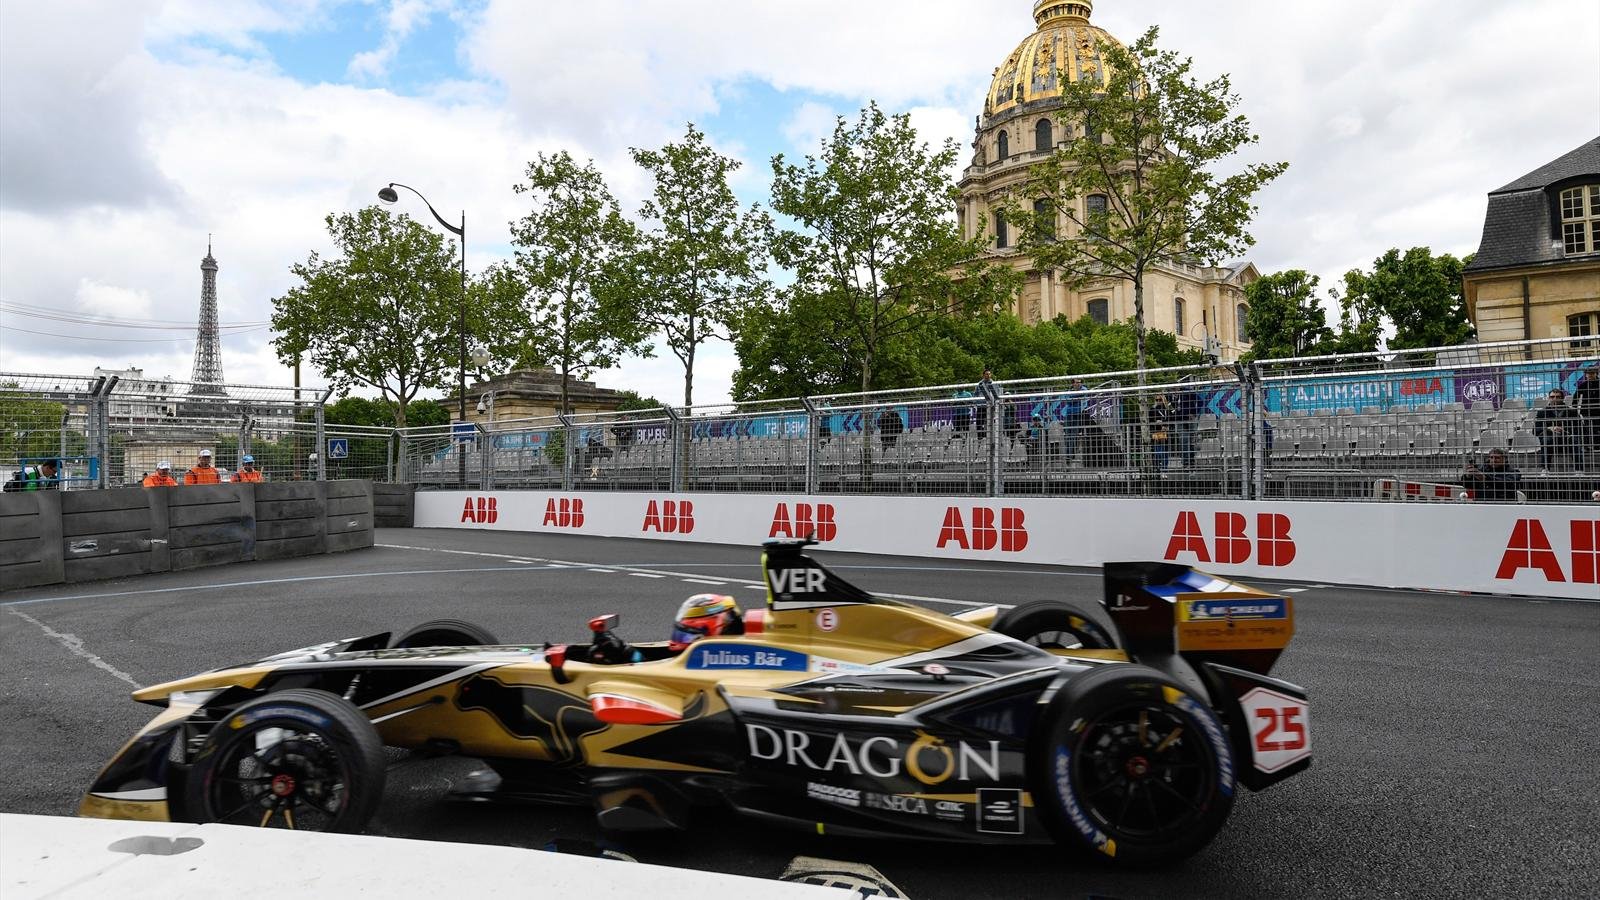 formule e jean eric vergne techeetah en pole position eprix de paris 2017 2018 formule e. Black Bedroom Furniture Sets. Home Design Ideas